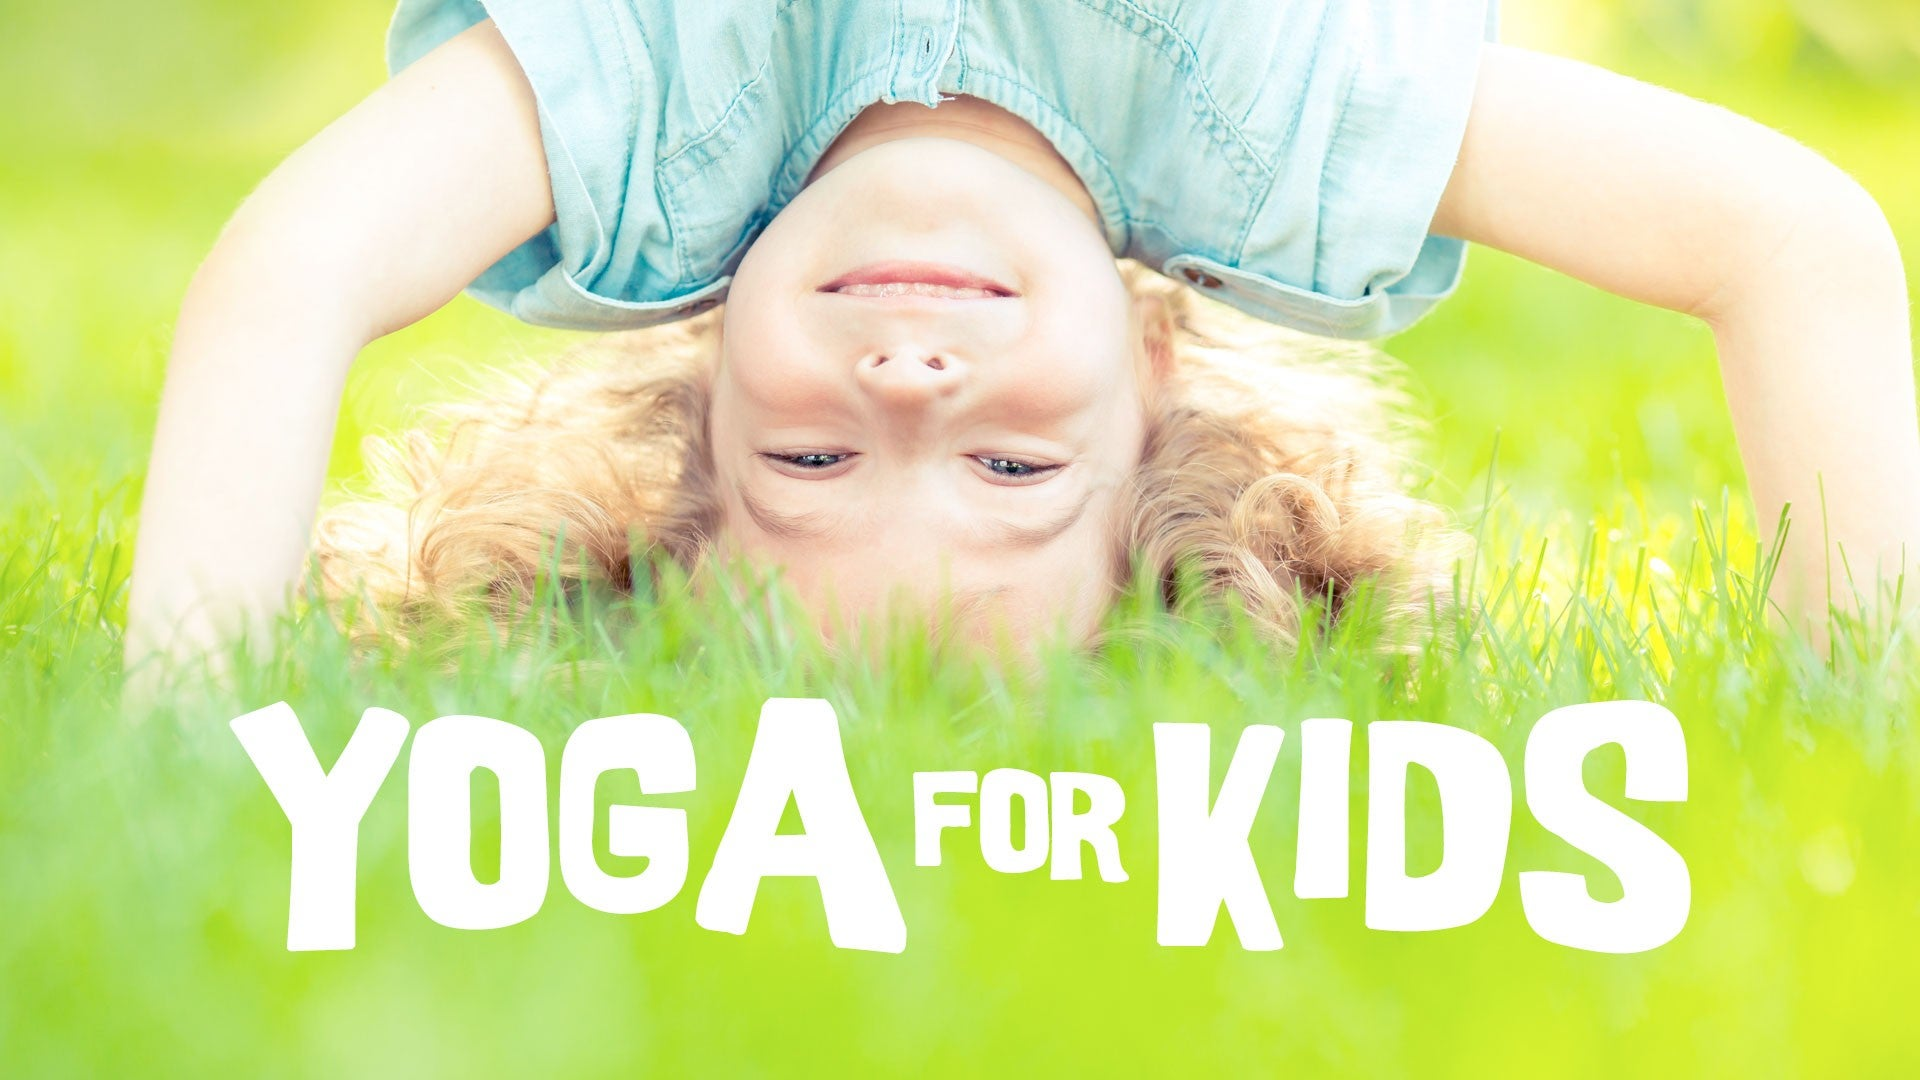 Yoga for Kids with Ms. Stix Artwork